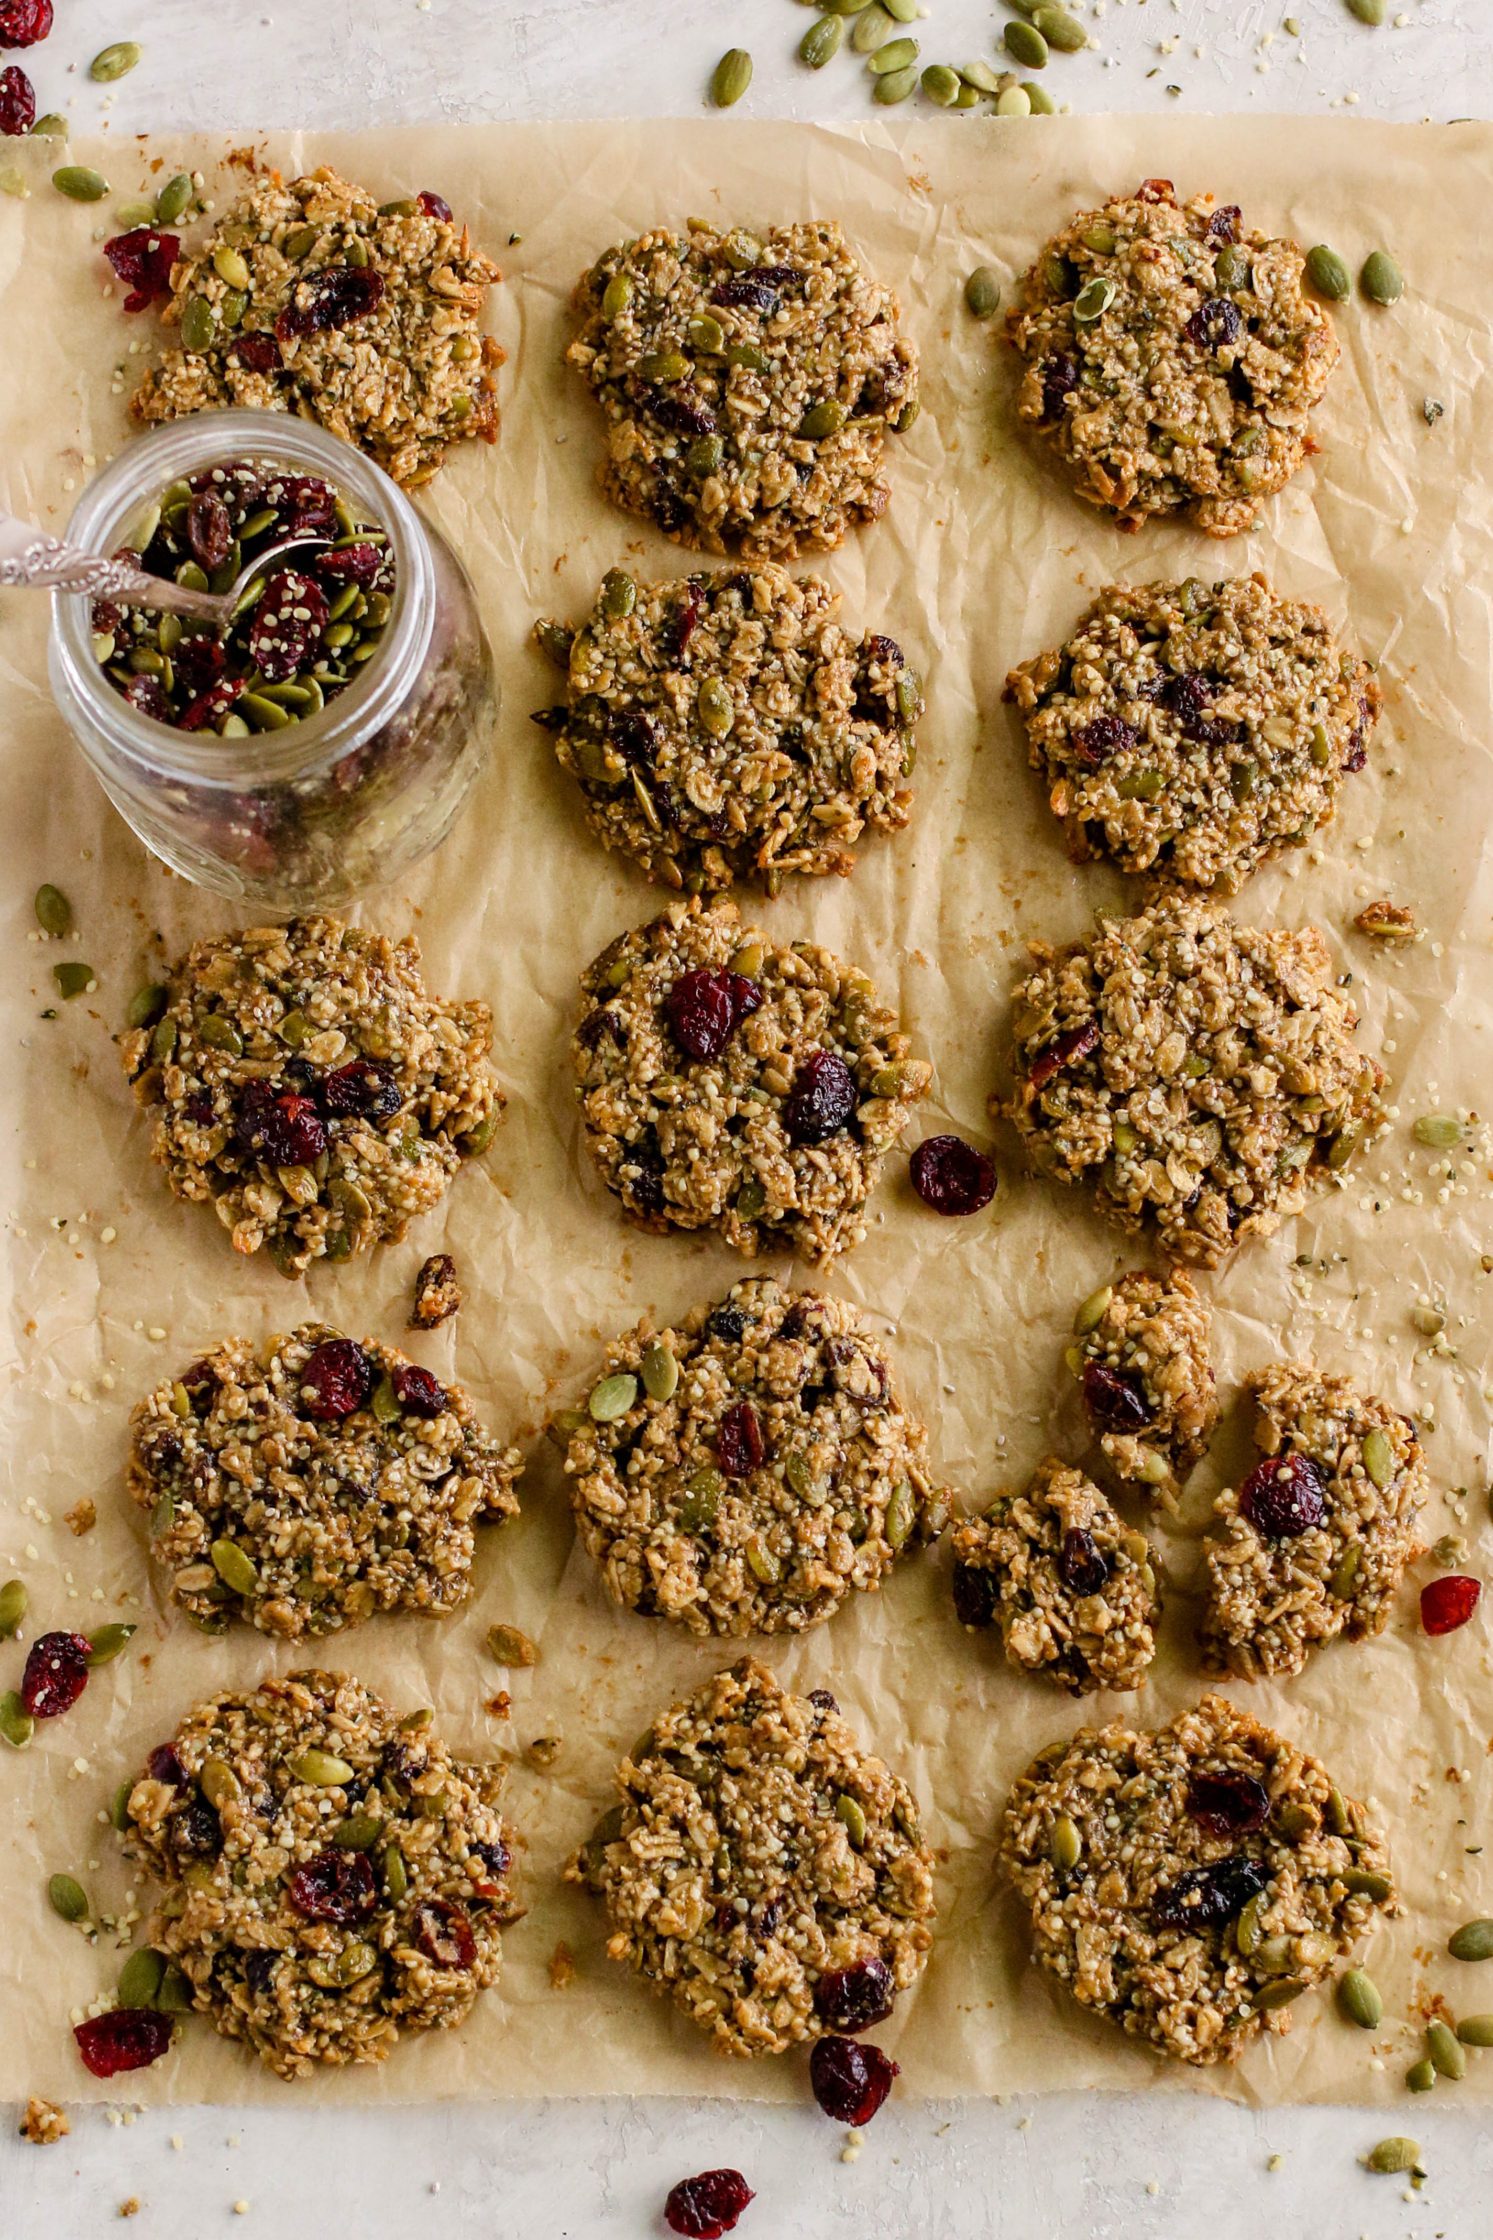 5-Seed Trail Mix Cookies (Nut-Free)